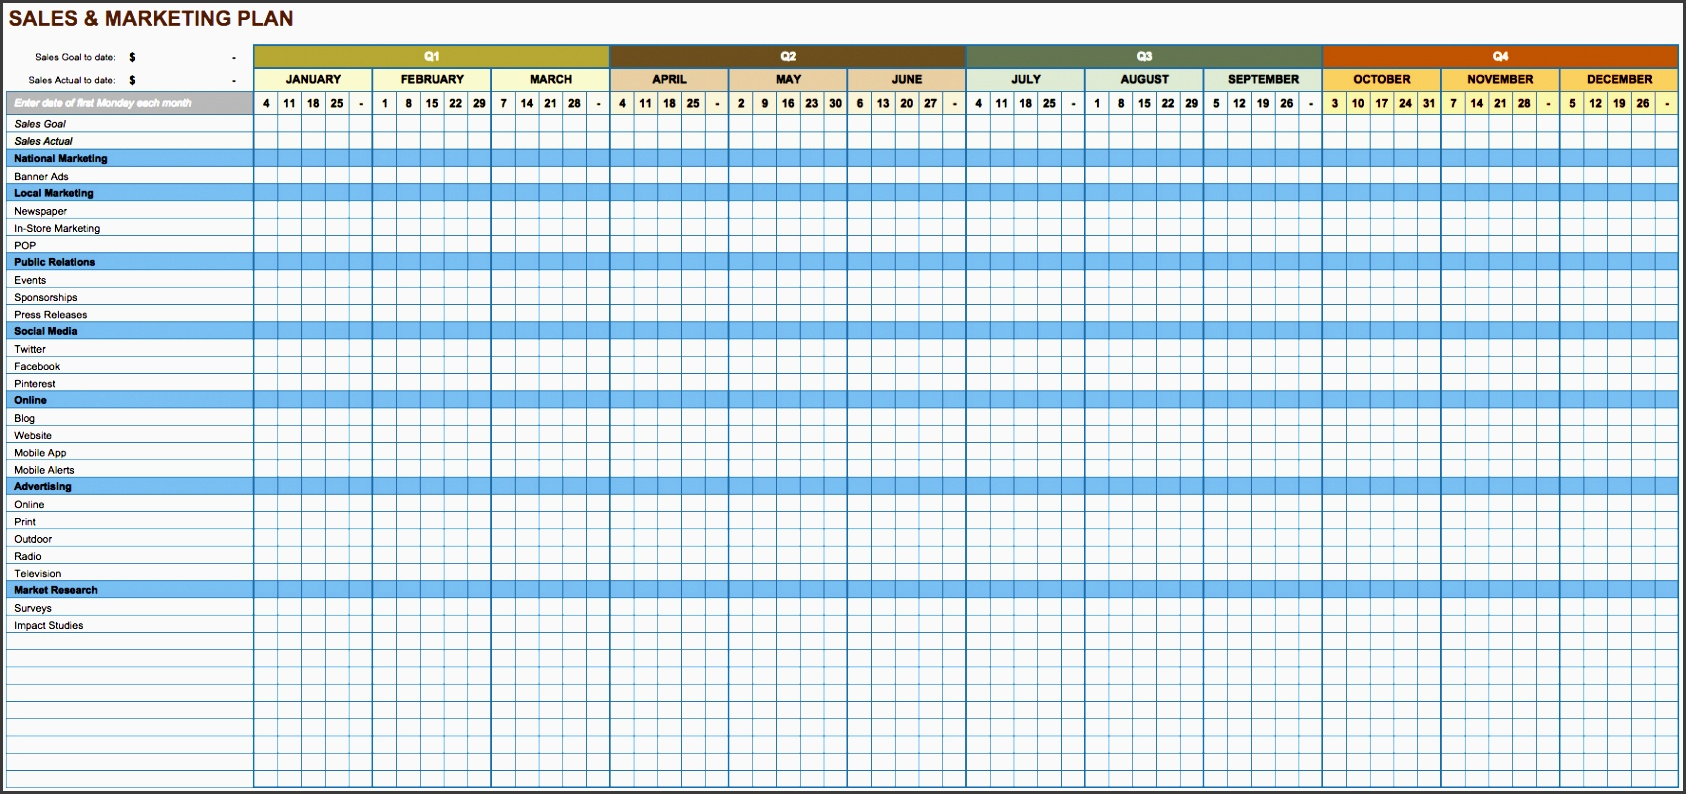 this sales and marketing plan template facilitates planning around sales goals and promotional activities this is an annual calendar template with all 12